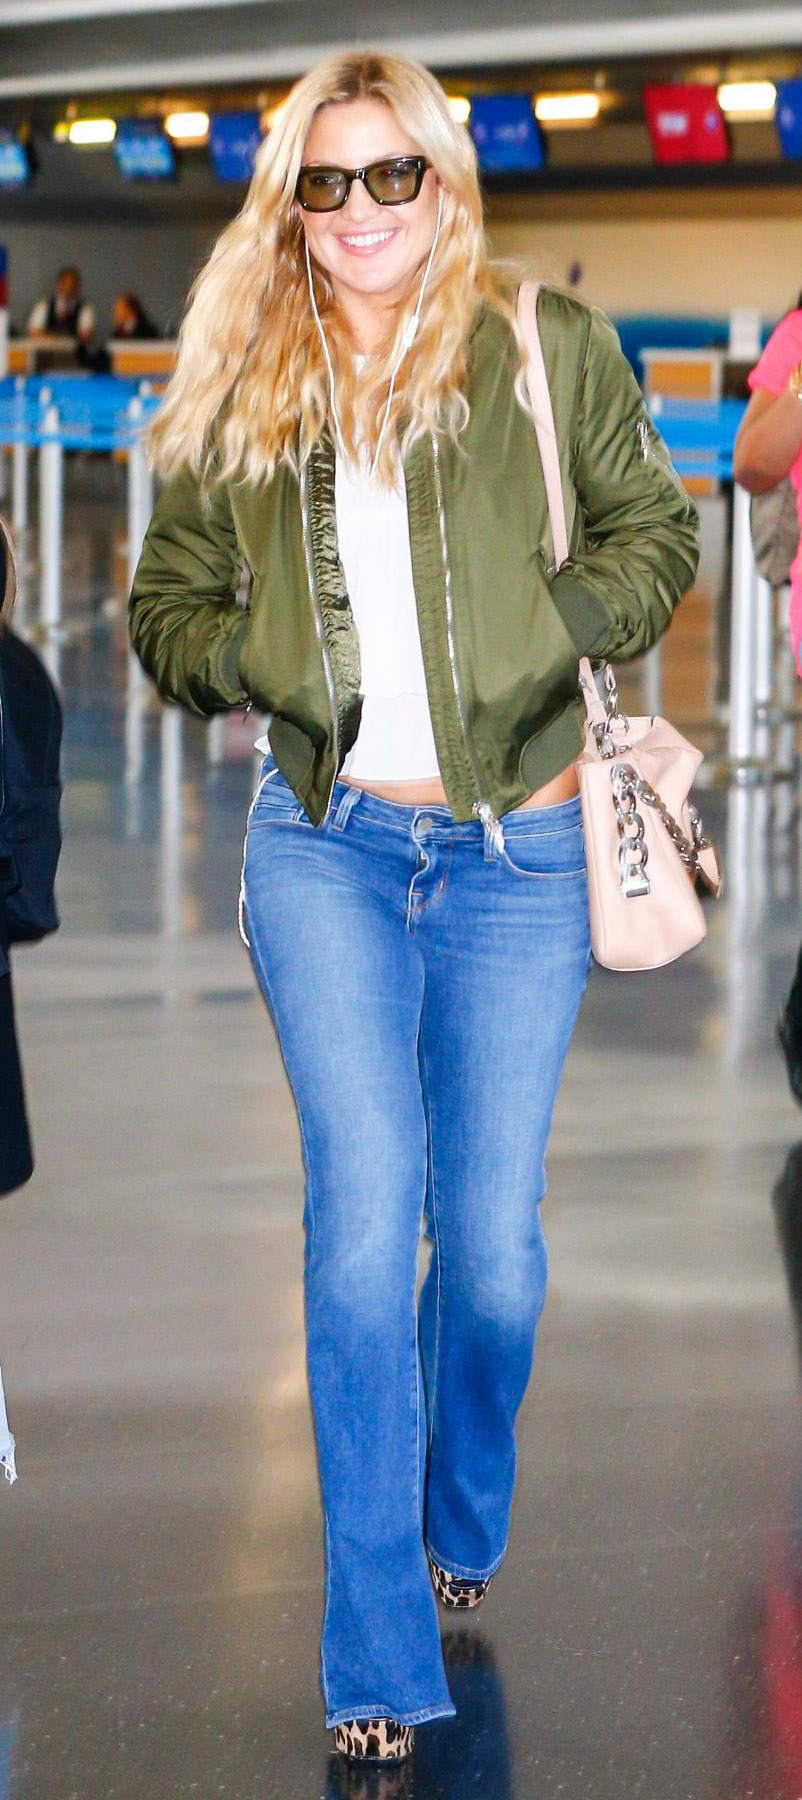 outfit-boho-style-type-flare-jeans-green-bomber-jacket-katehudson-travel-outfit-jfk-airport-in-nyc.jpg